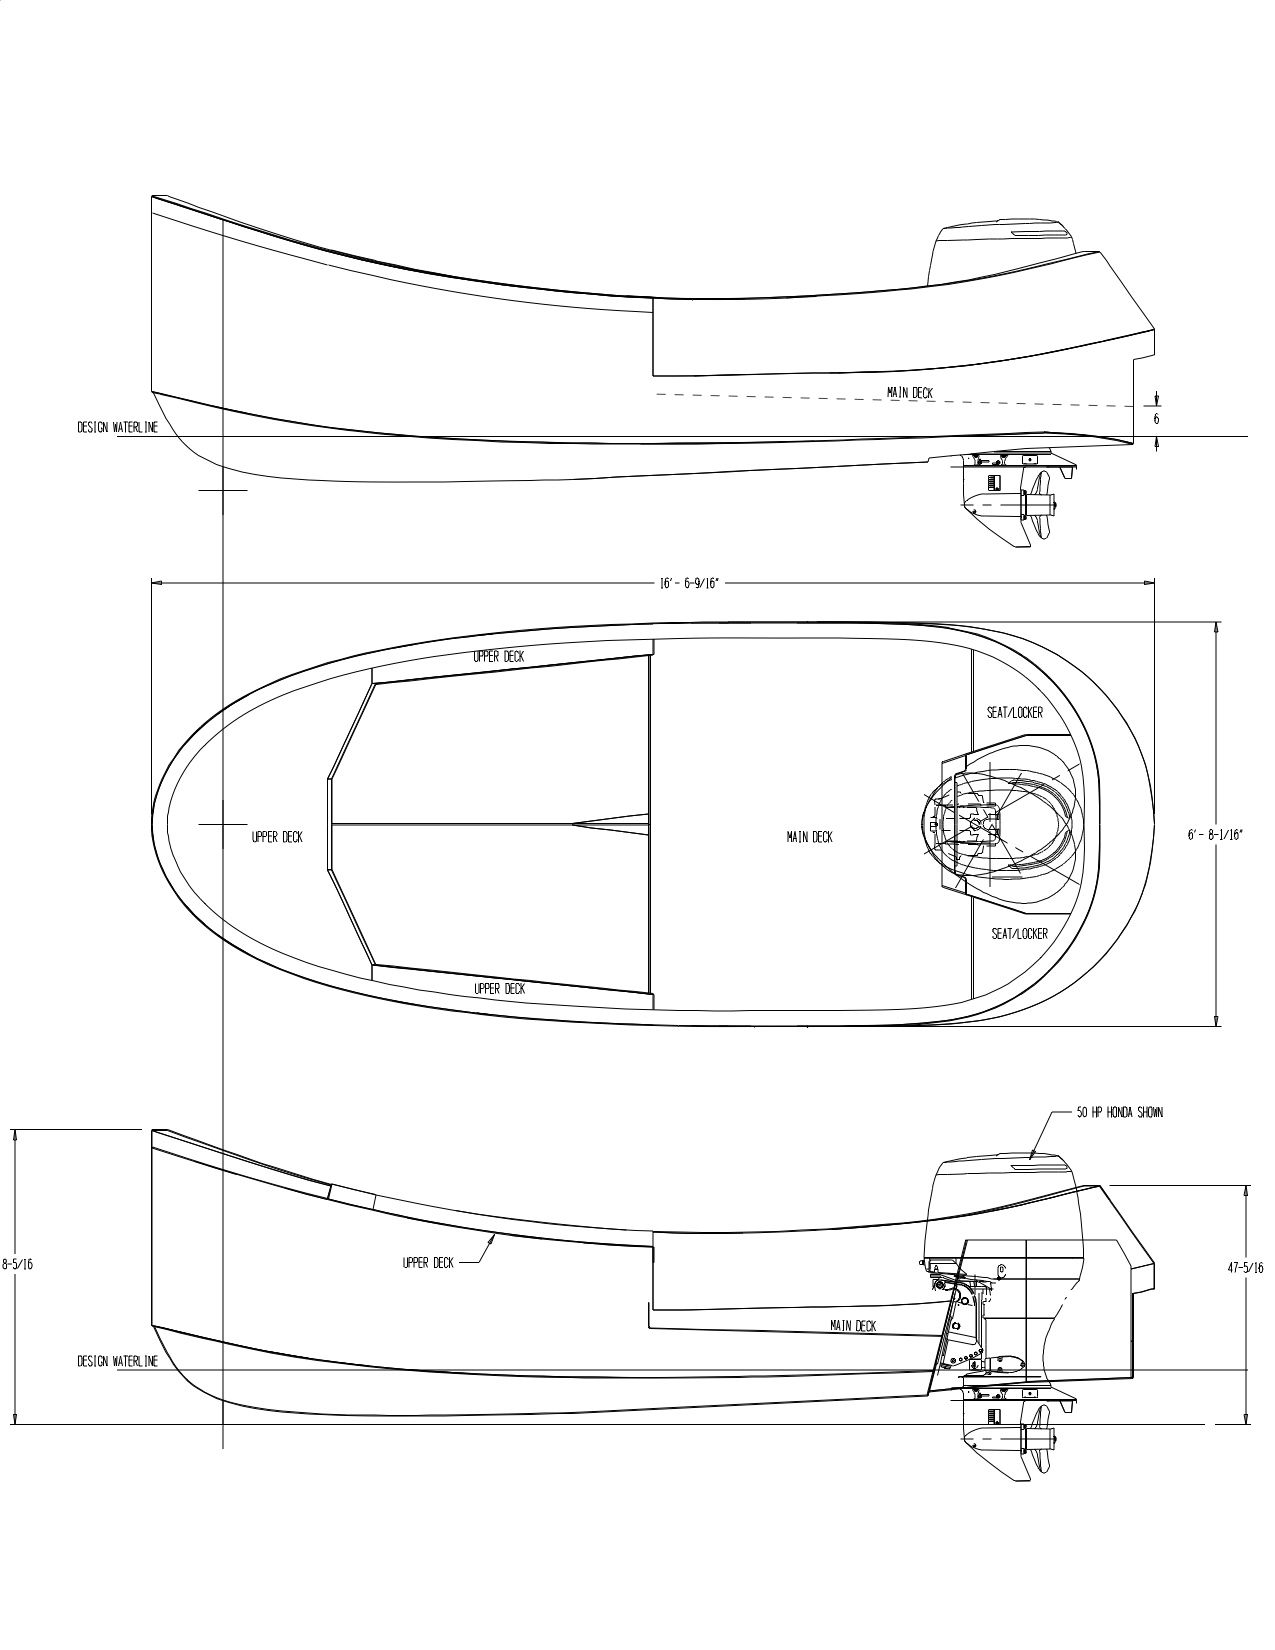 small resolution of trailerable houseboat plans aluminum boat aluminum fishing boat aluminum tugboat mini tugboat